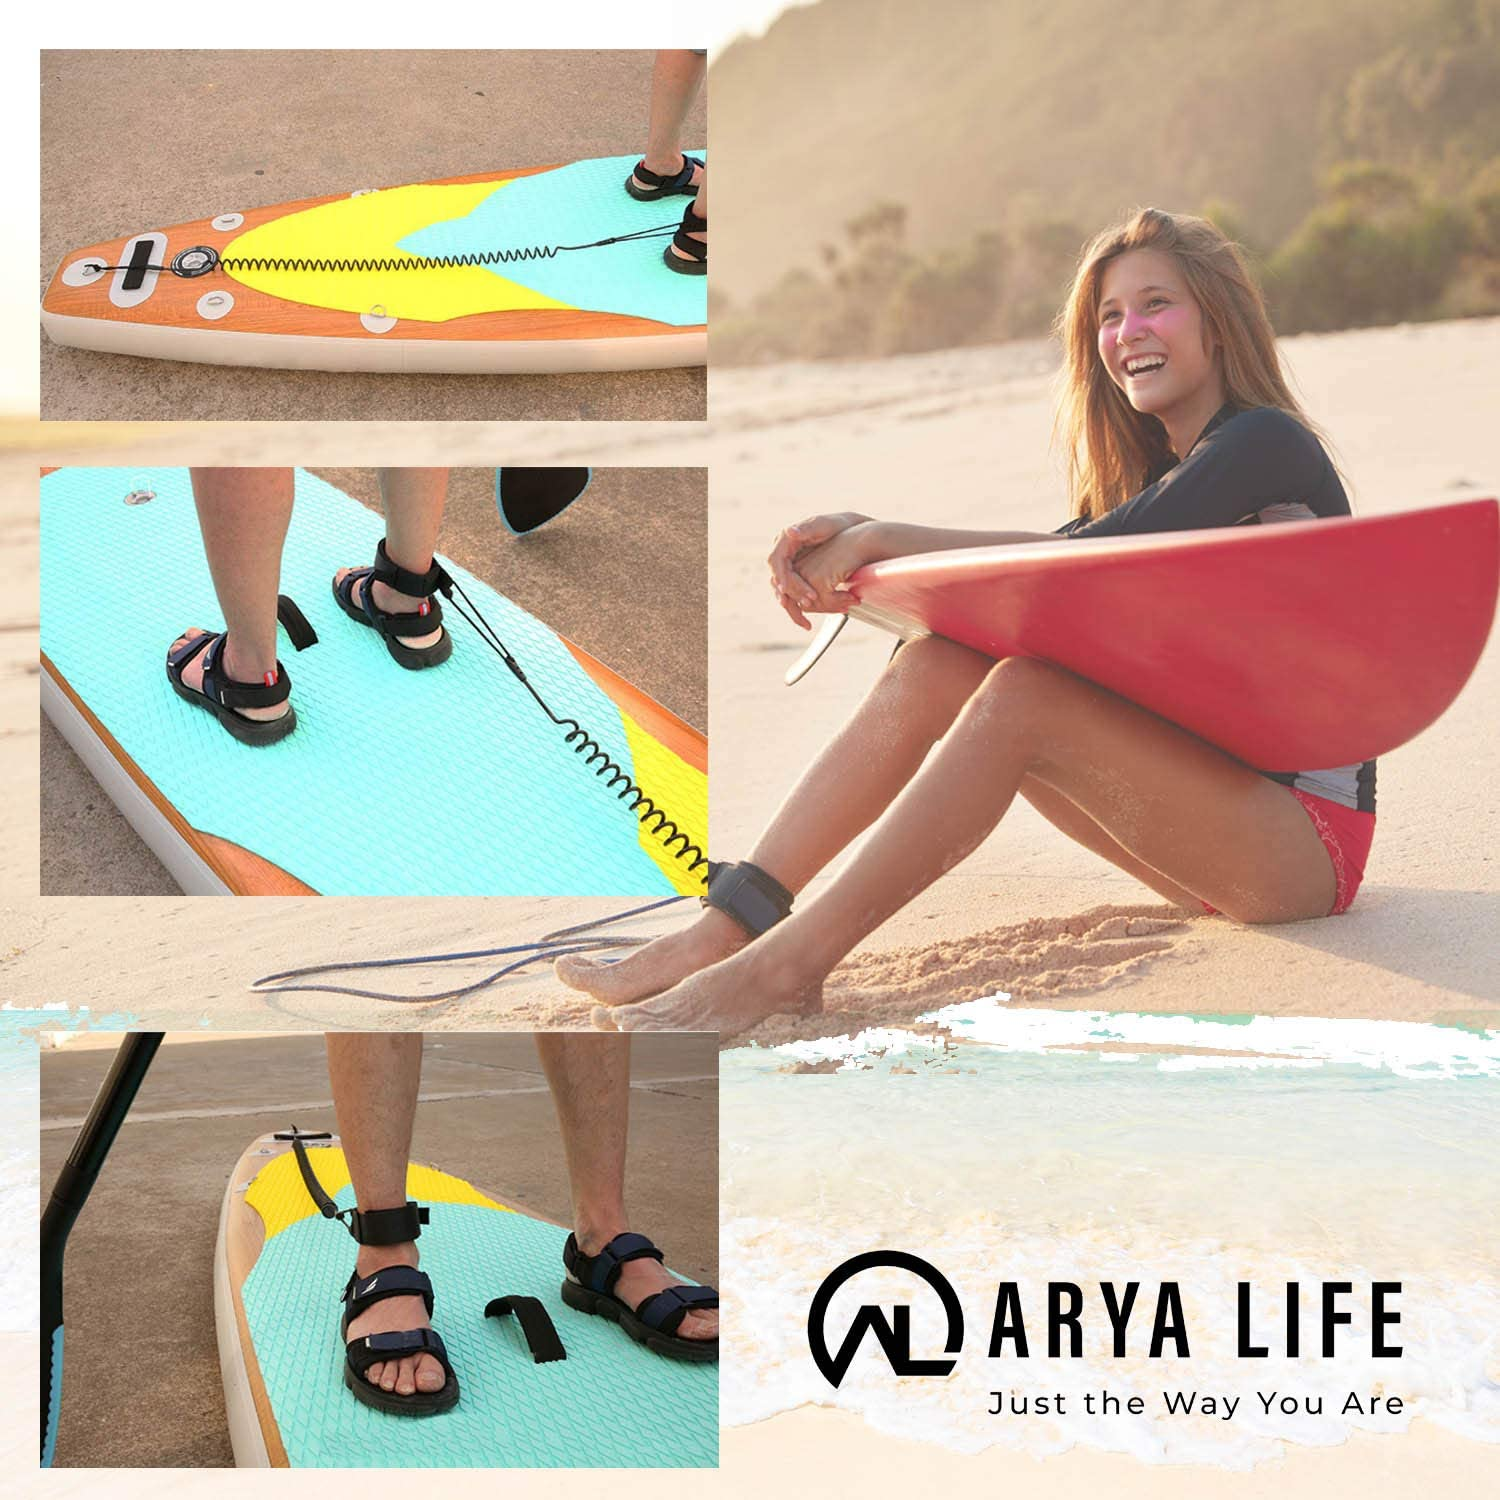 Arya Life SUP Leash 10 Foot Coiled Stand Up Paddle Board Surfboard Leash Stay on Board Ankle Strap,Blue